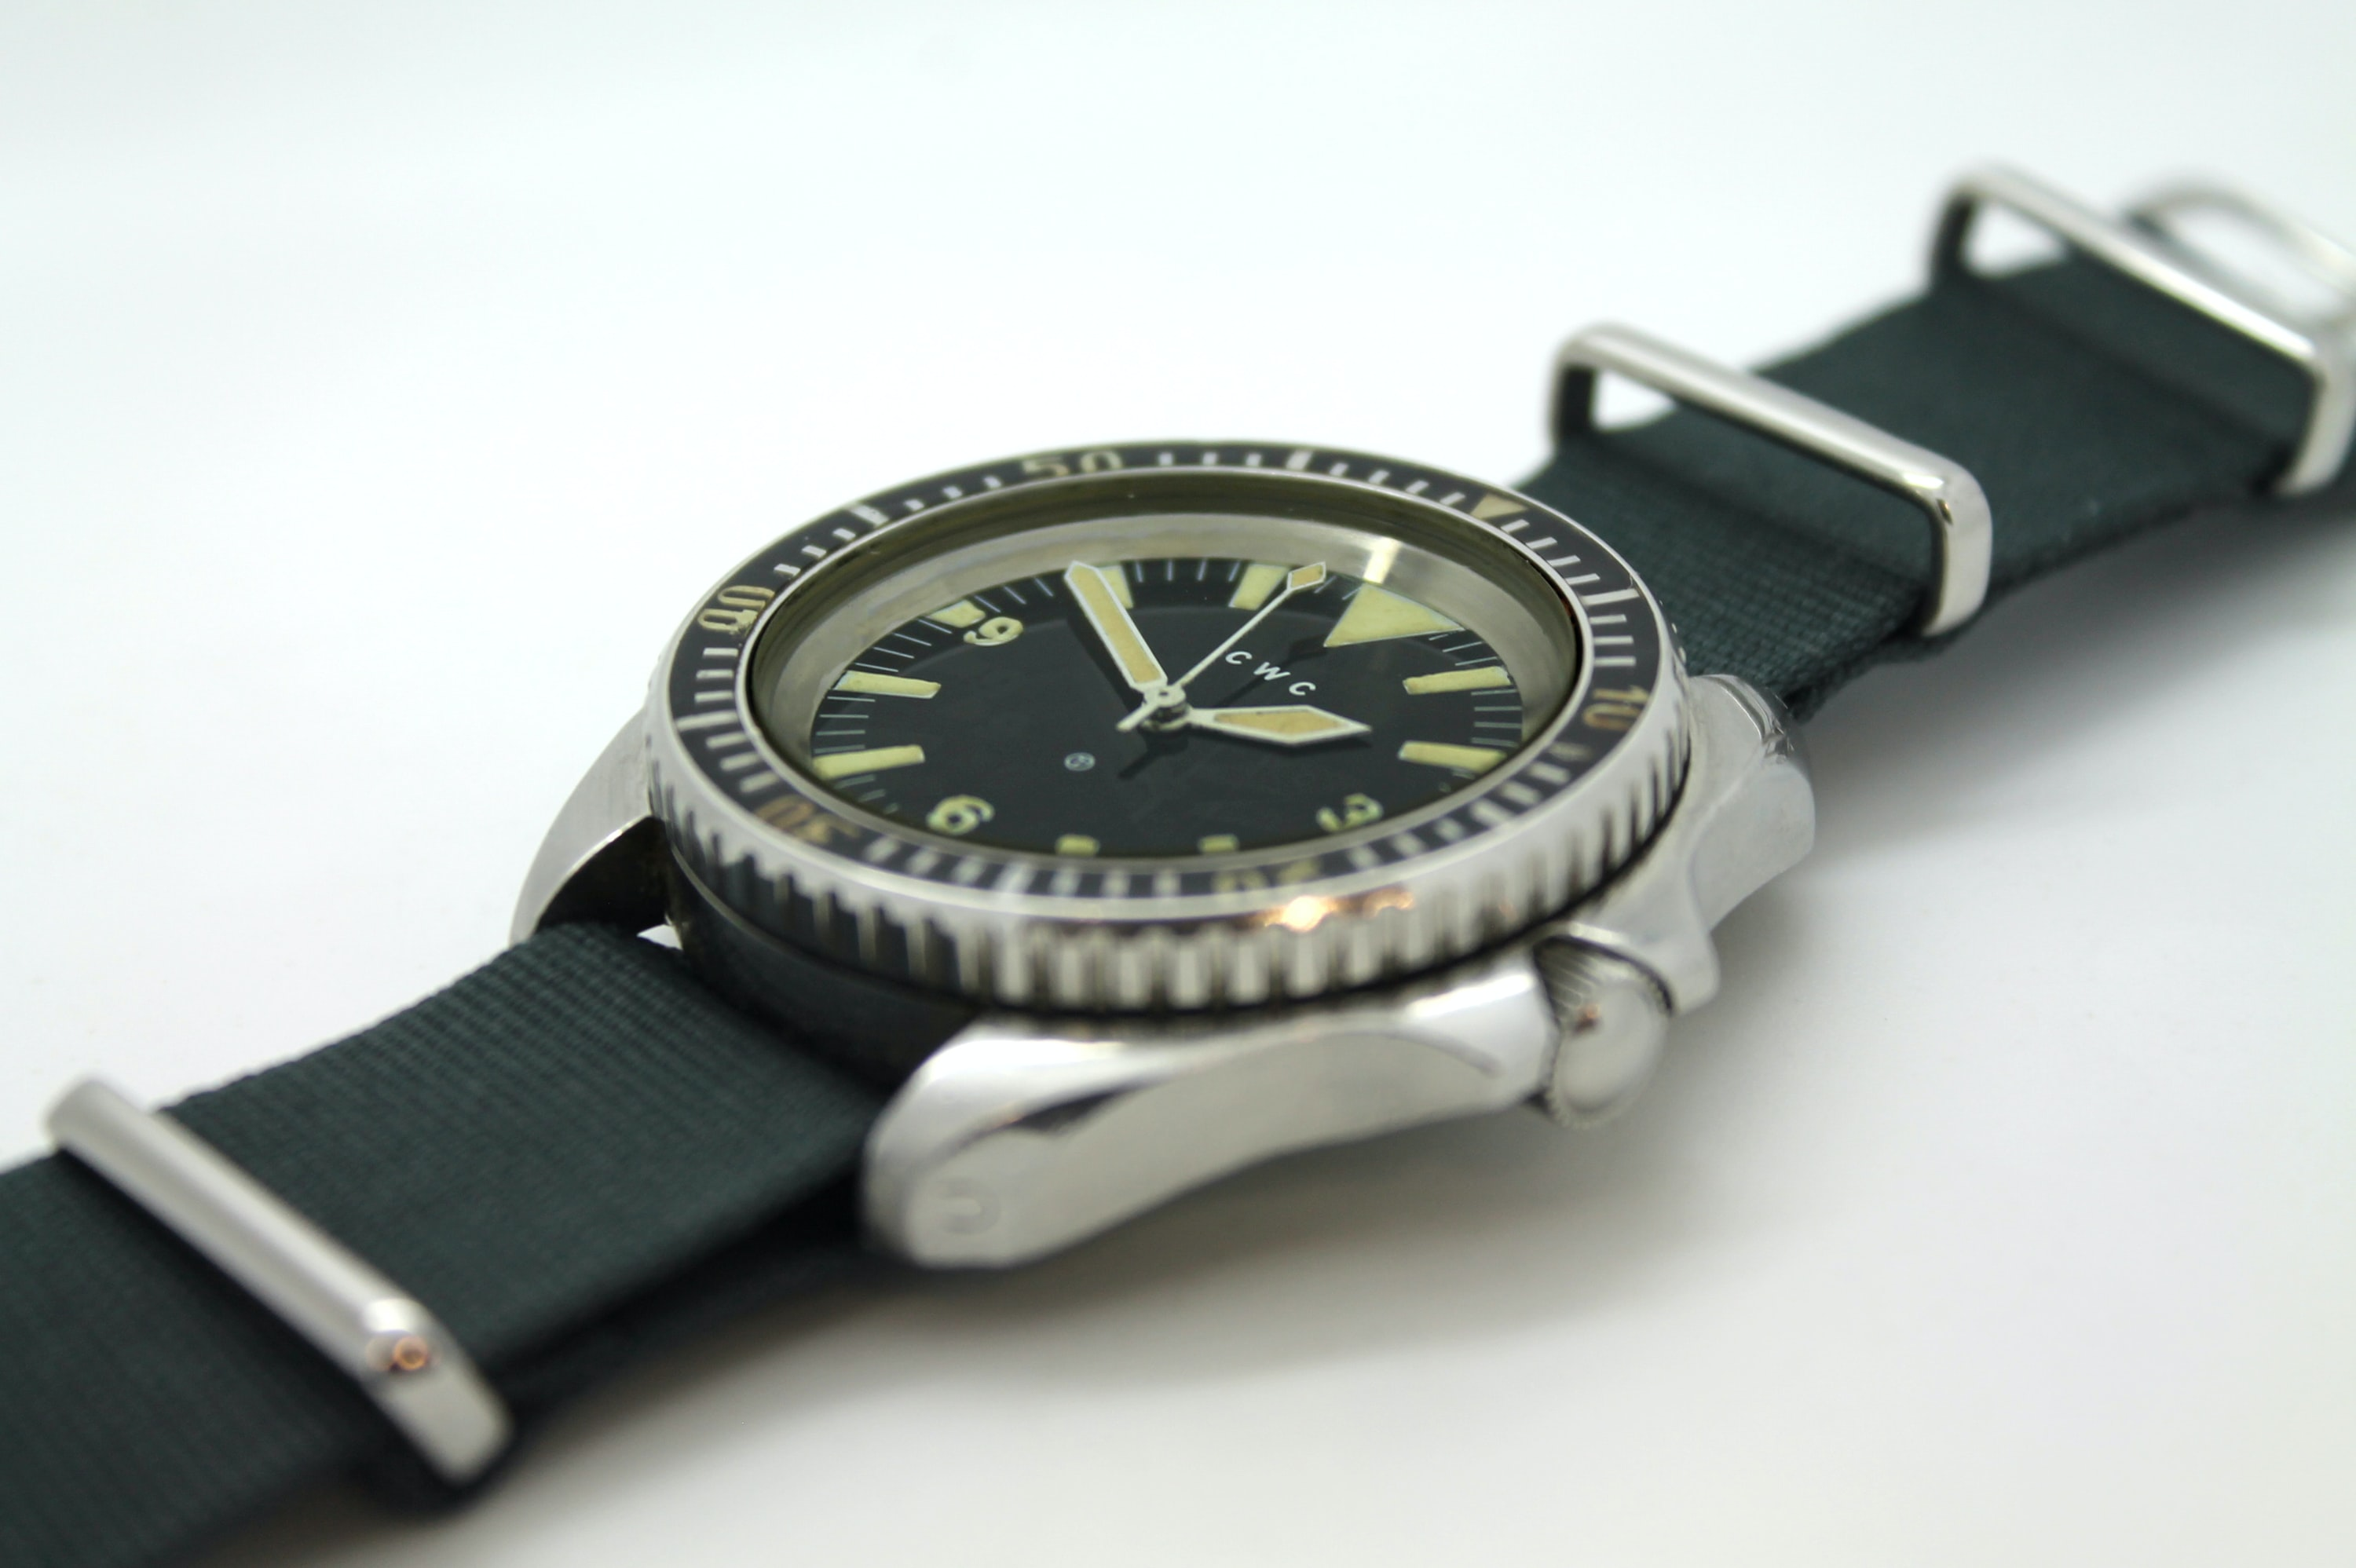 cwc dive watch automatic.